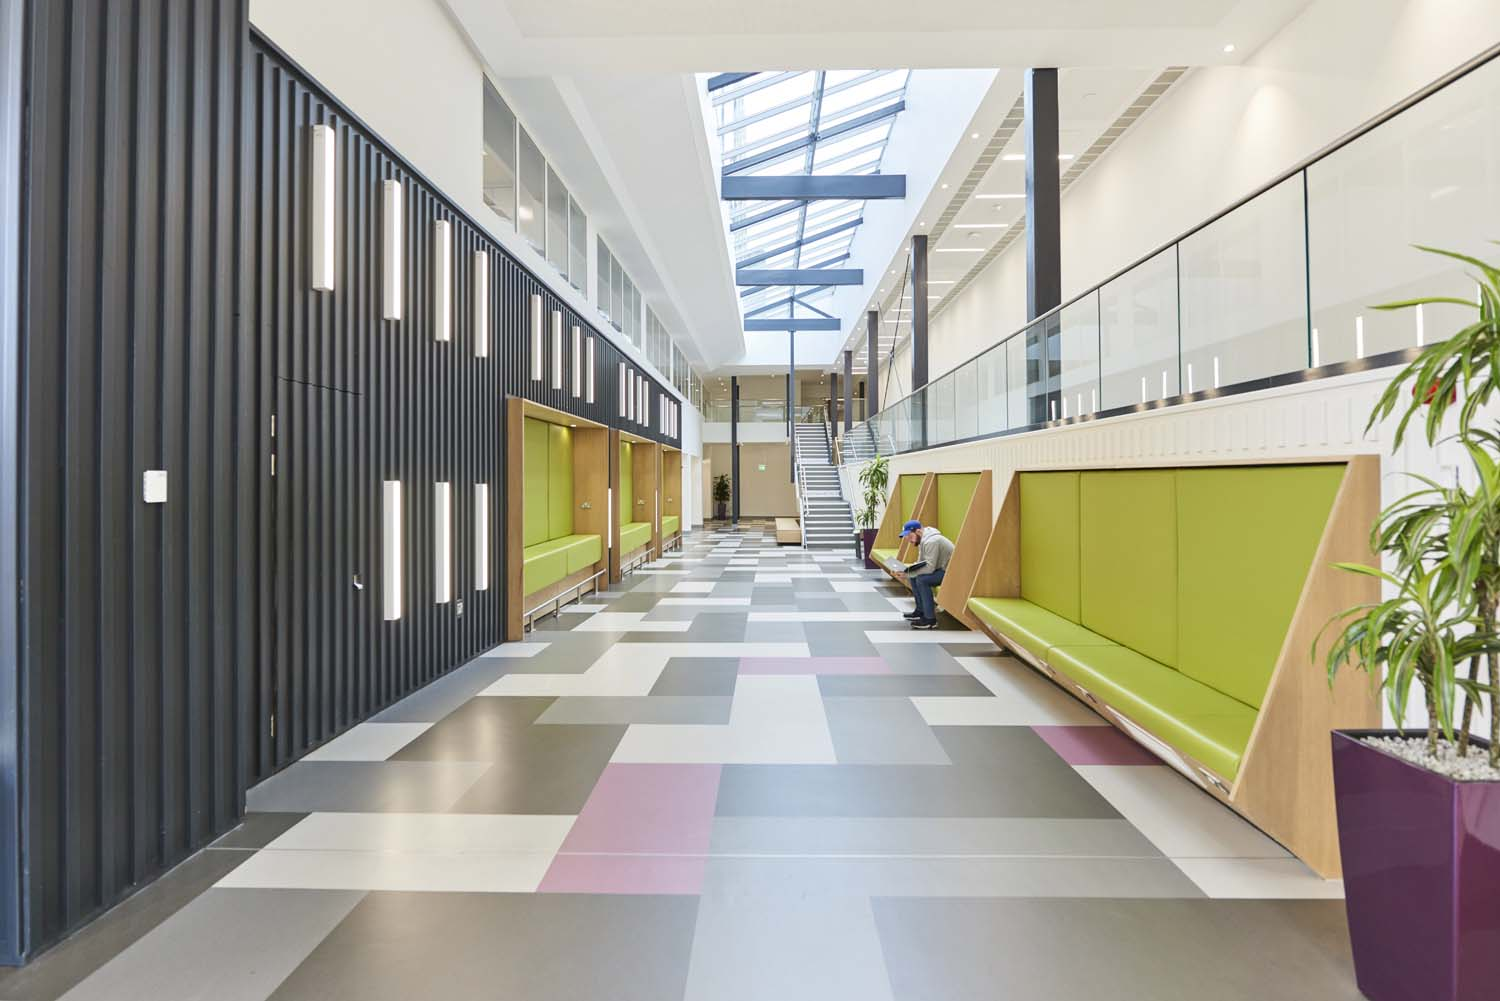 Leeds Beckett University for Race Cottam Architects